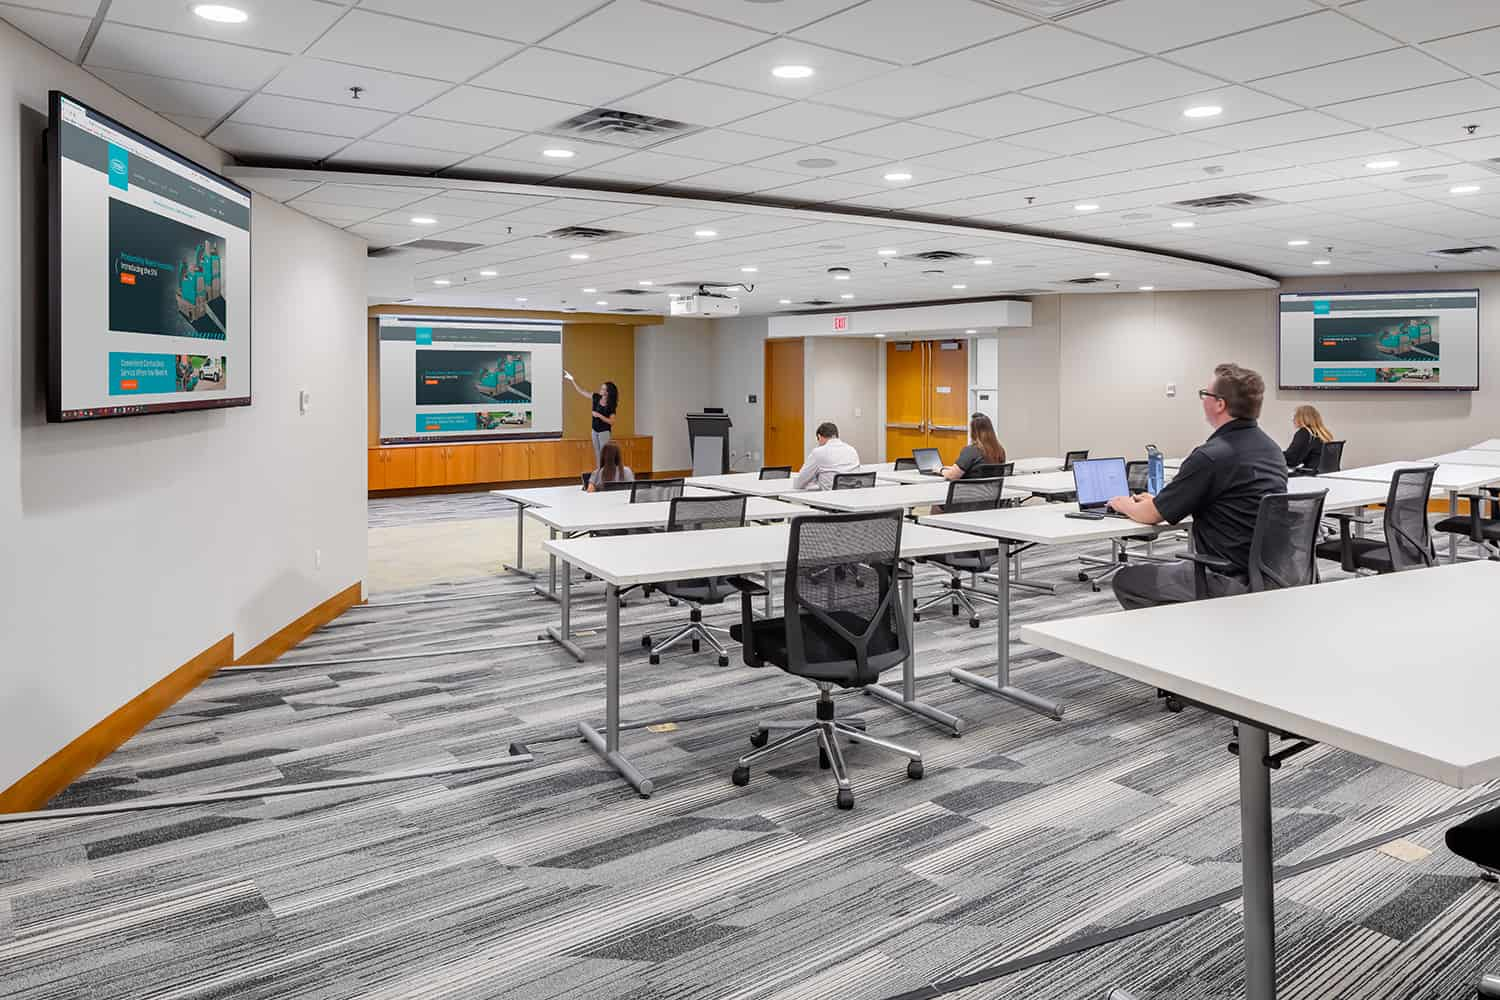 A large conference room with multiple monitors throughout the room.